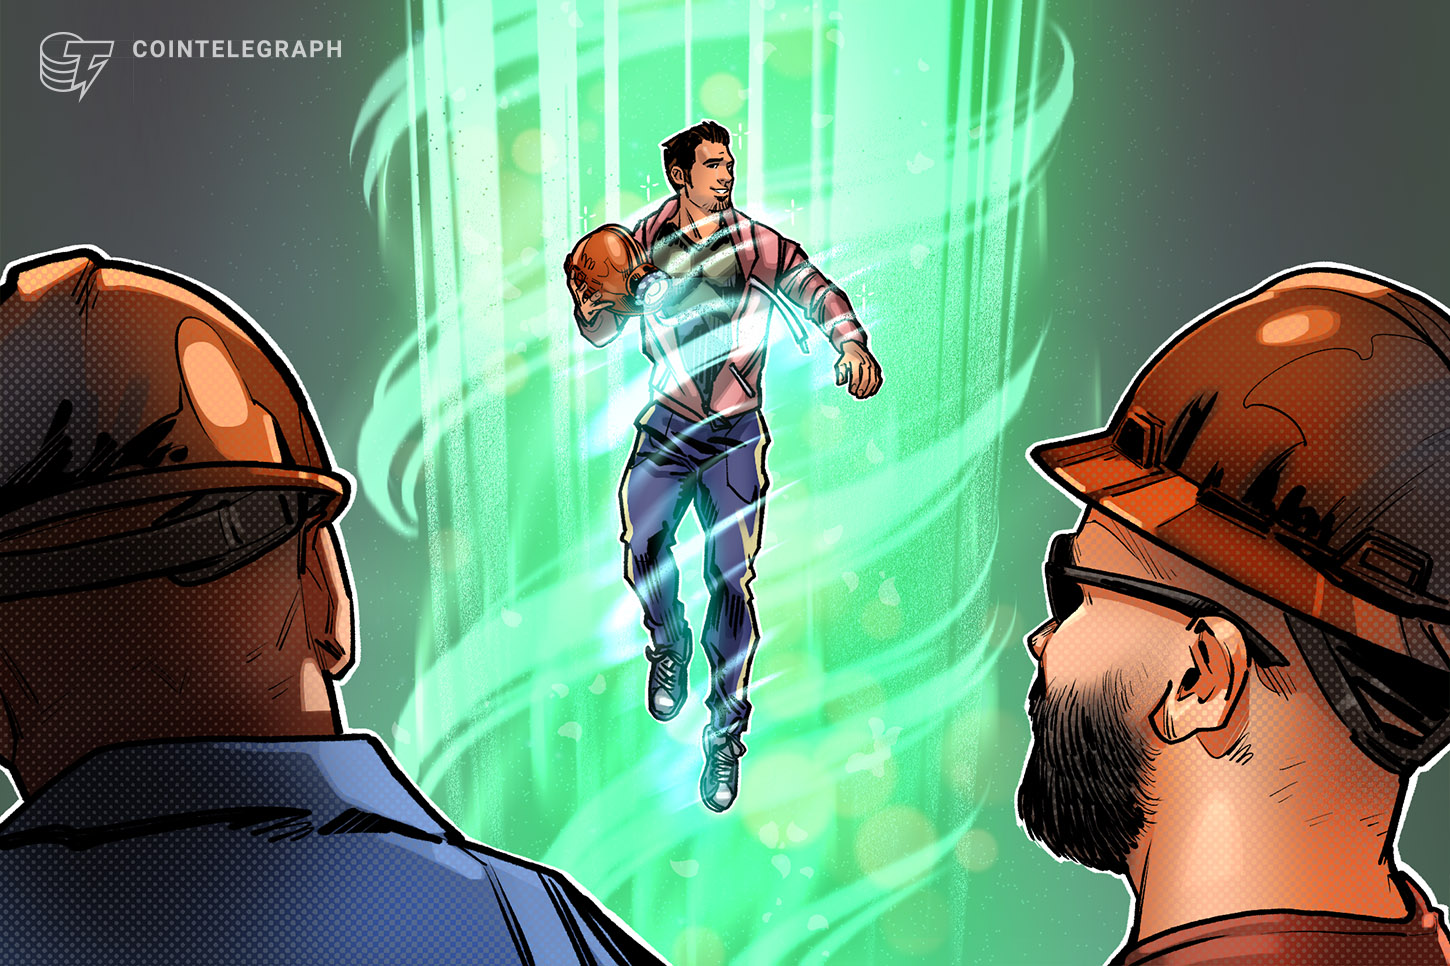 Crypto mining needs to be redefined before simply casting it away